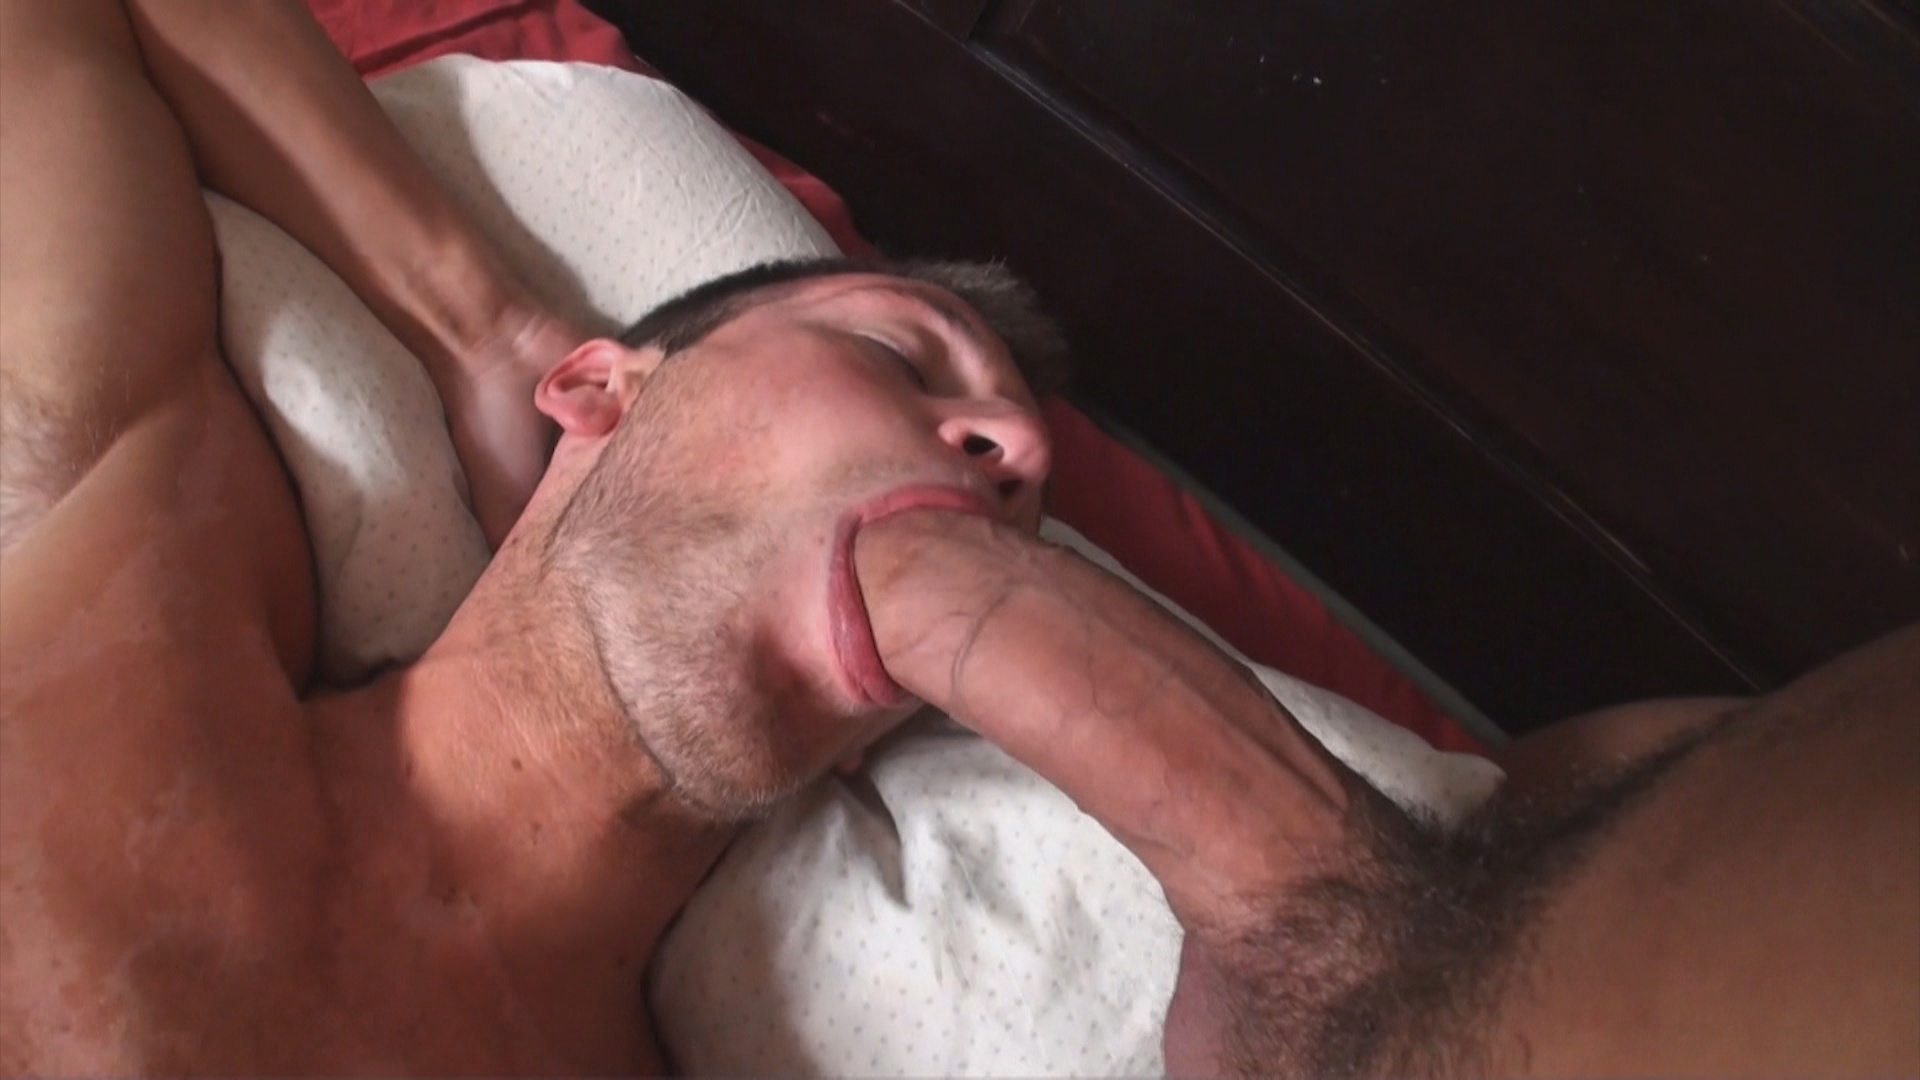 My Straight Roommate 5 Xvideo gay